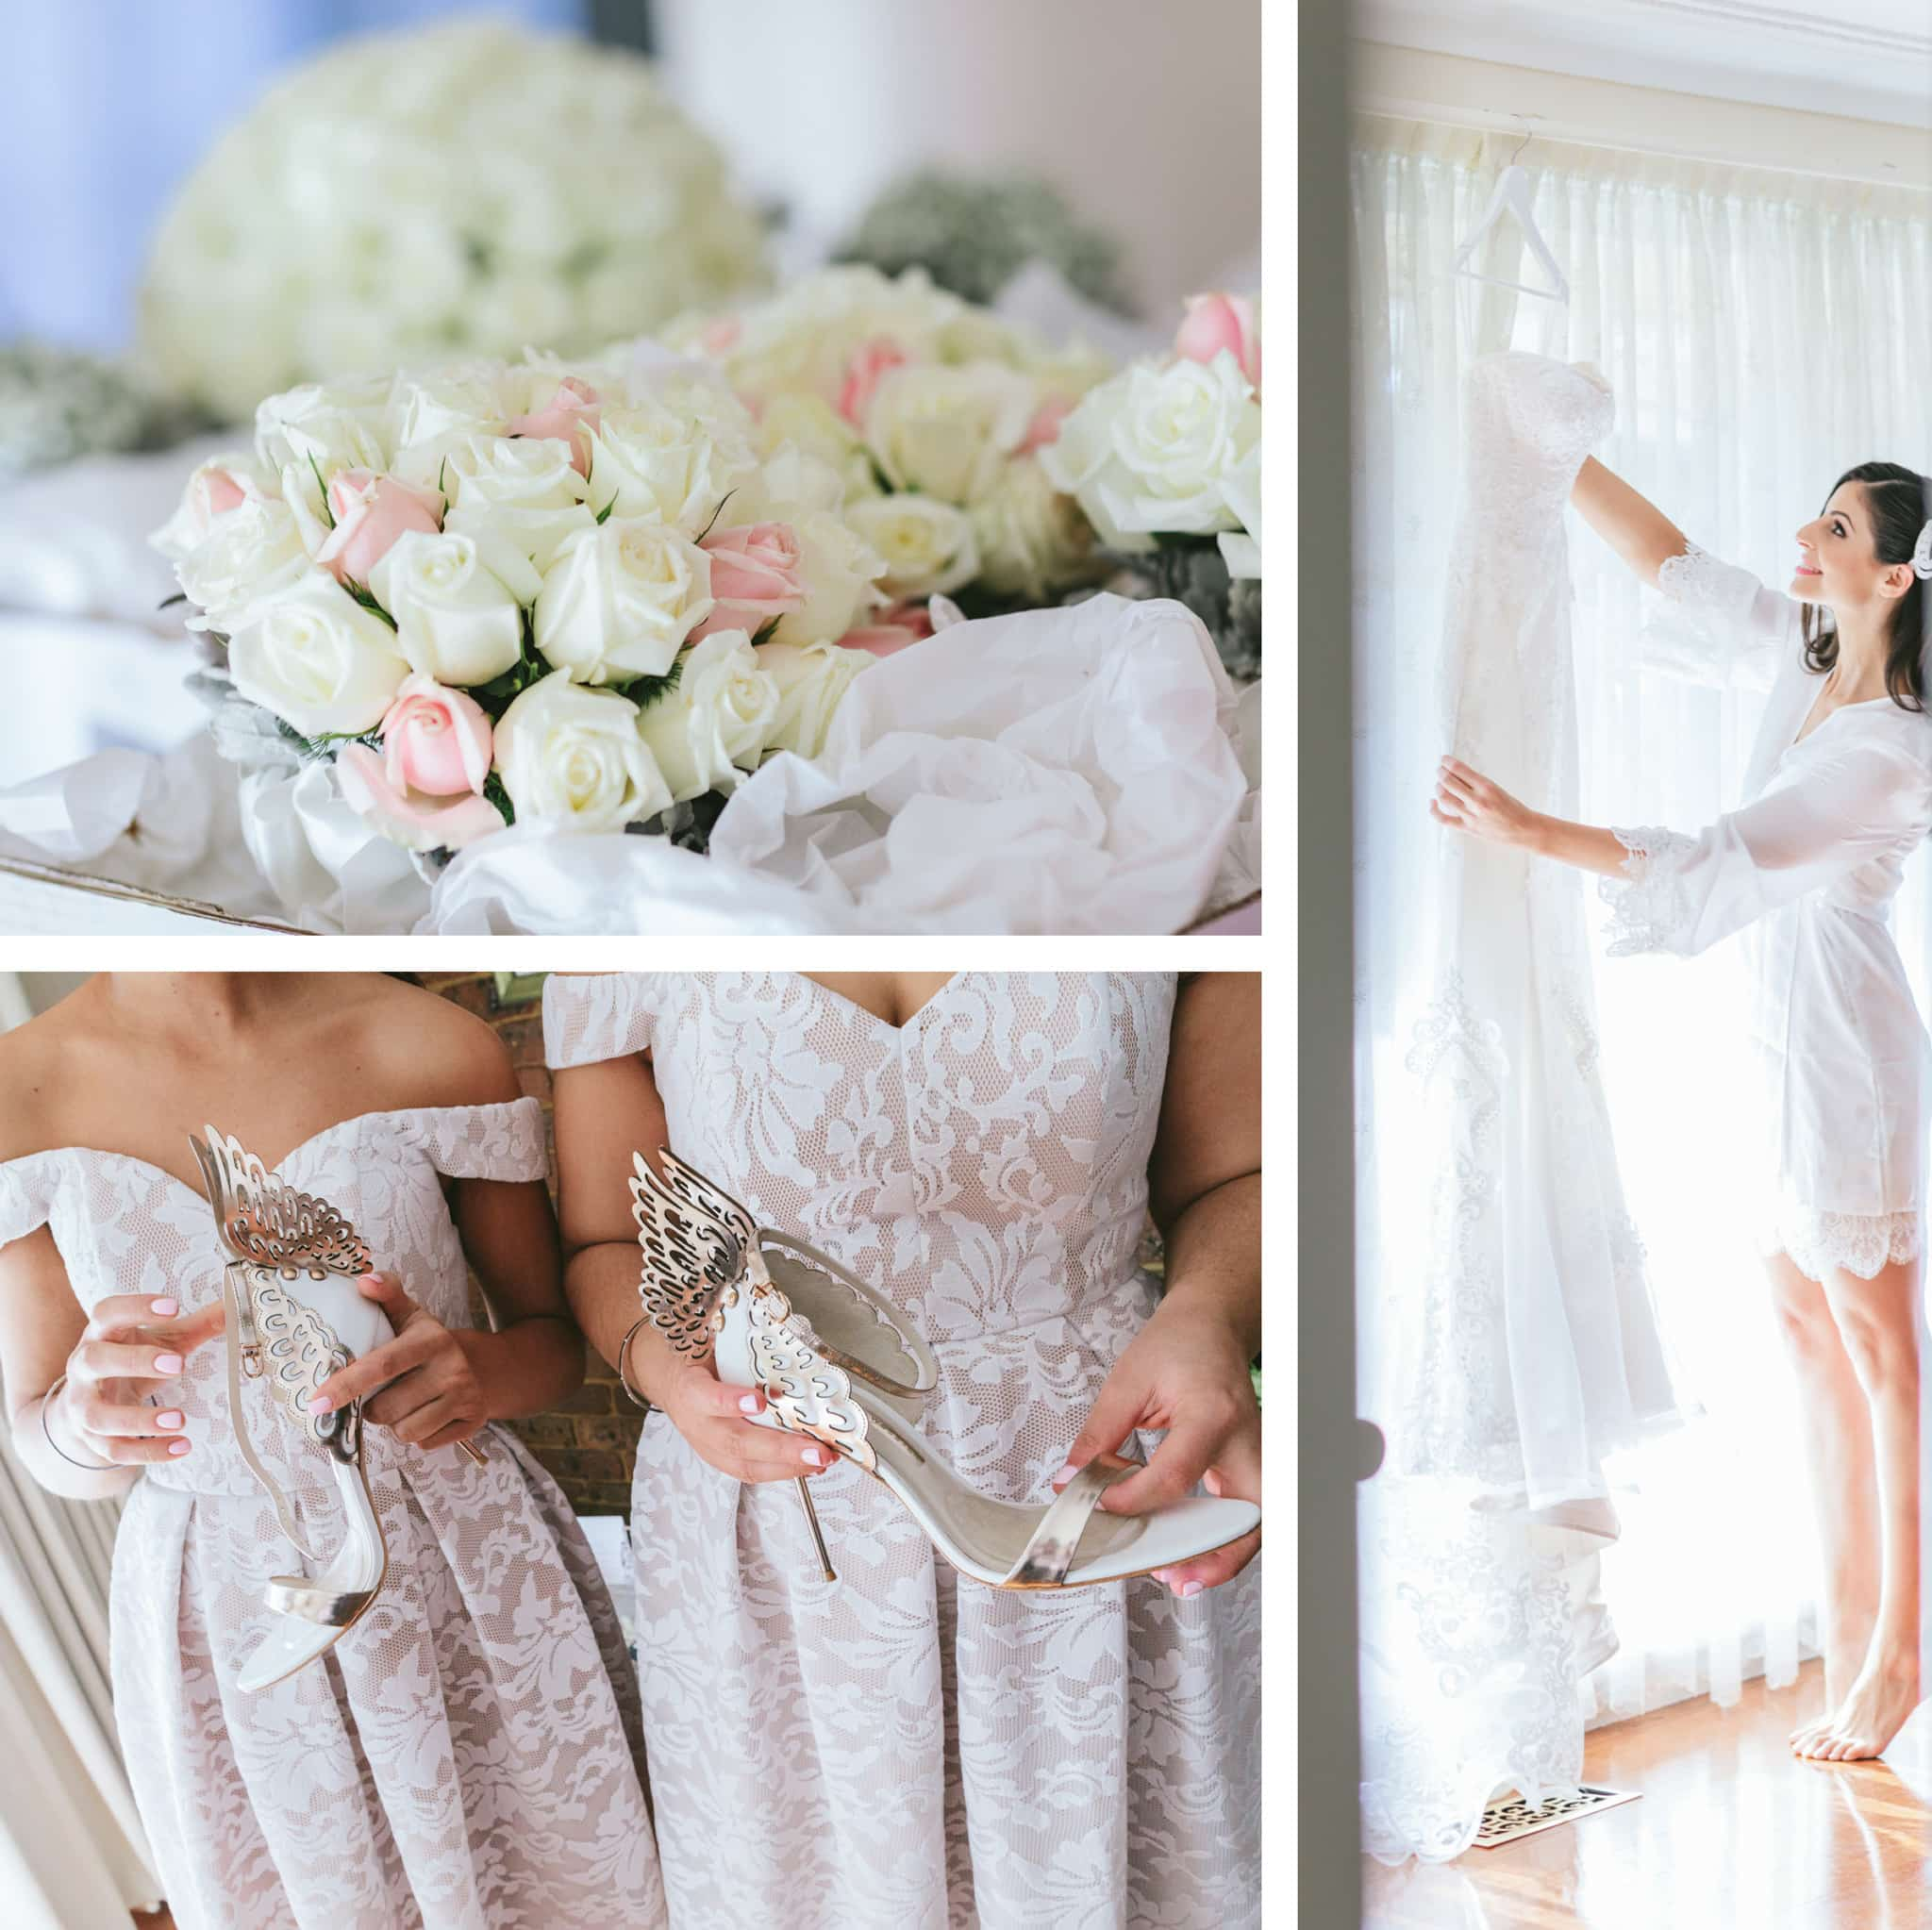 bride getting dressed - shoes with wings - wedding inspiration